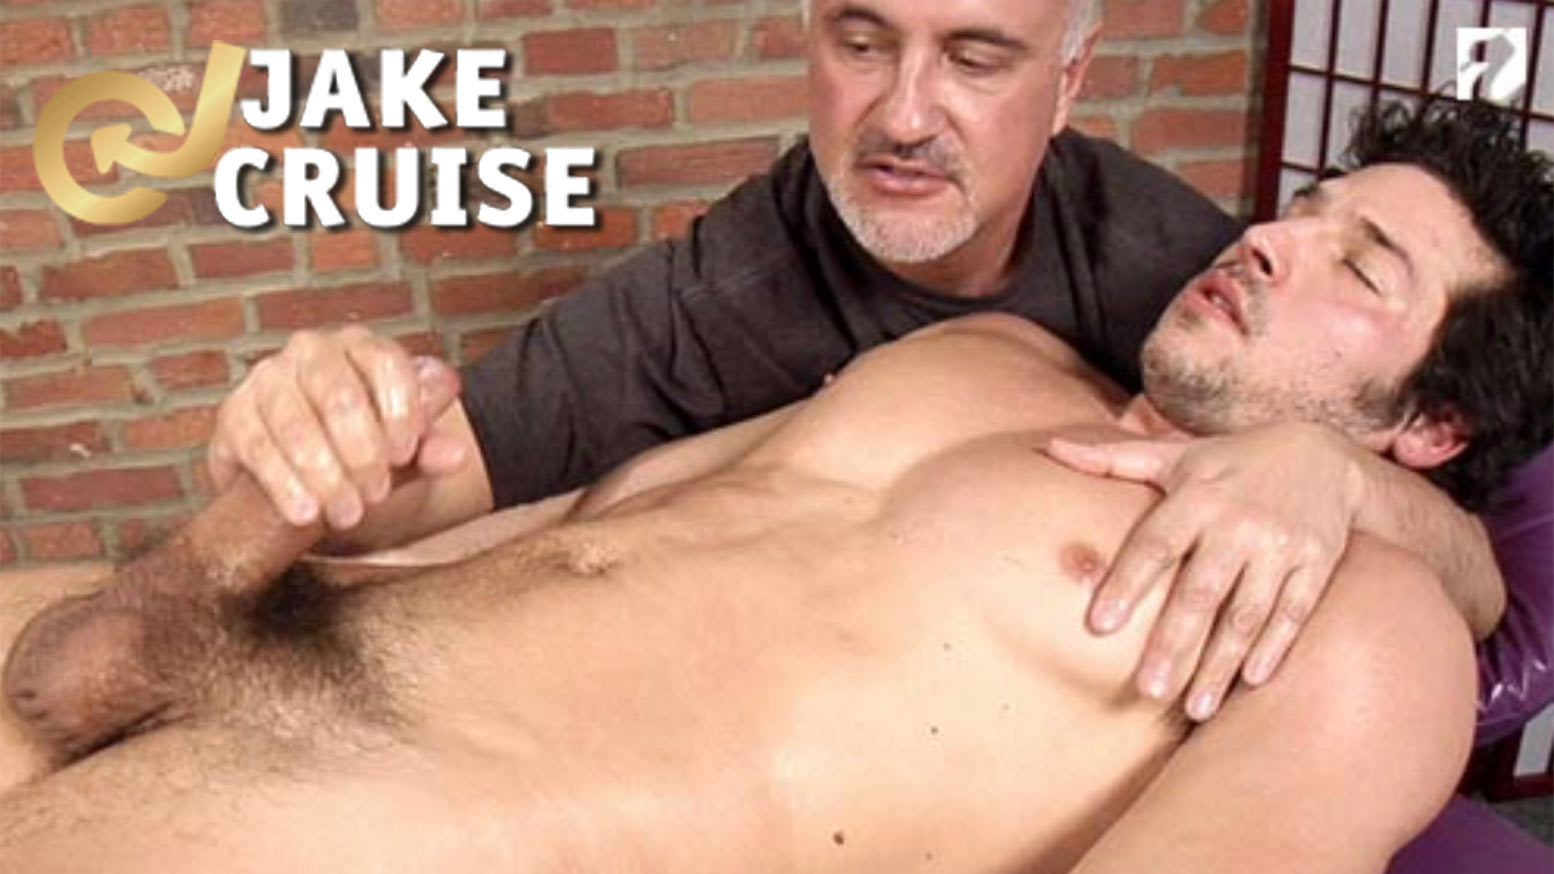 Porn Leo Giamani jake cruise: leo giamani massaged - waybig